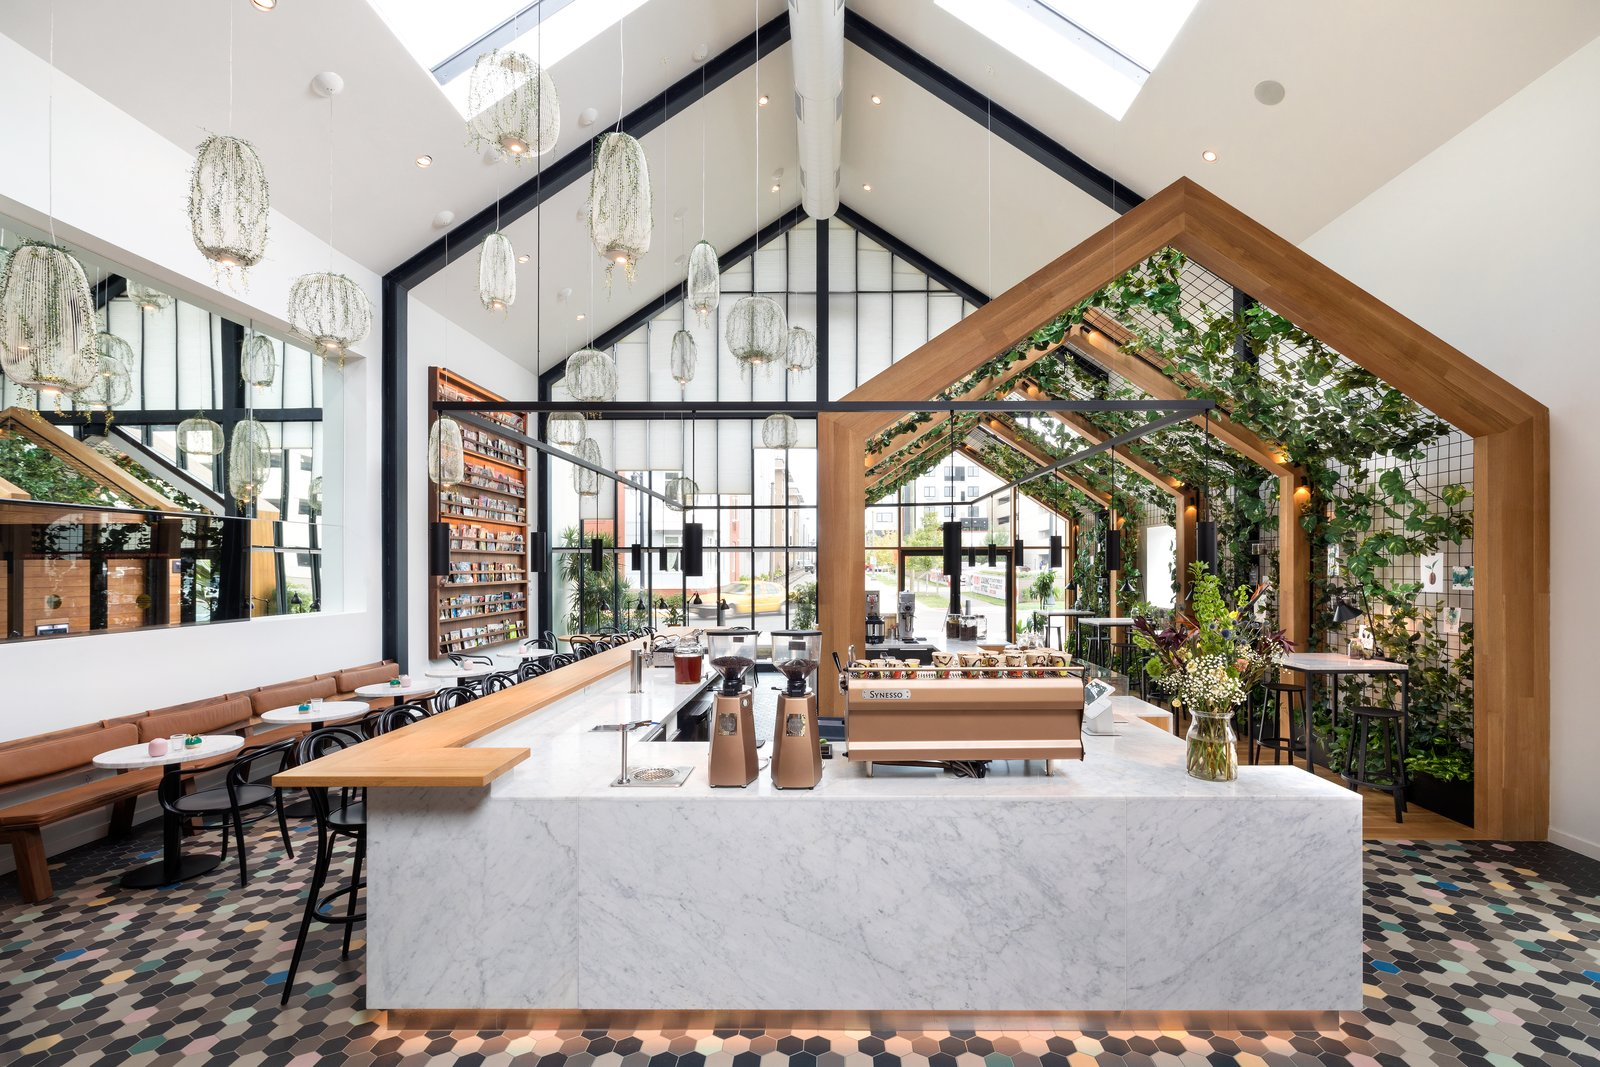 Boutique Coffee Roaster Coperaco's First Cafe Holds a Modern Tree House